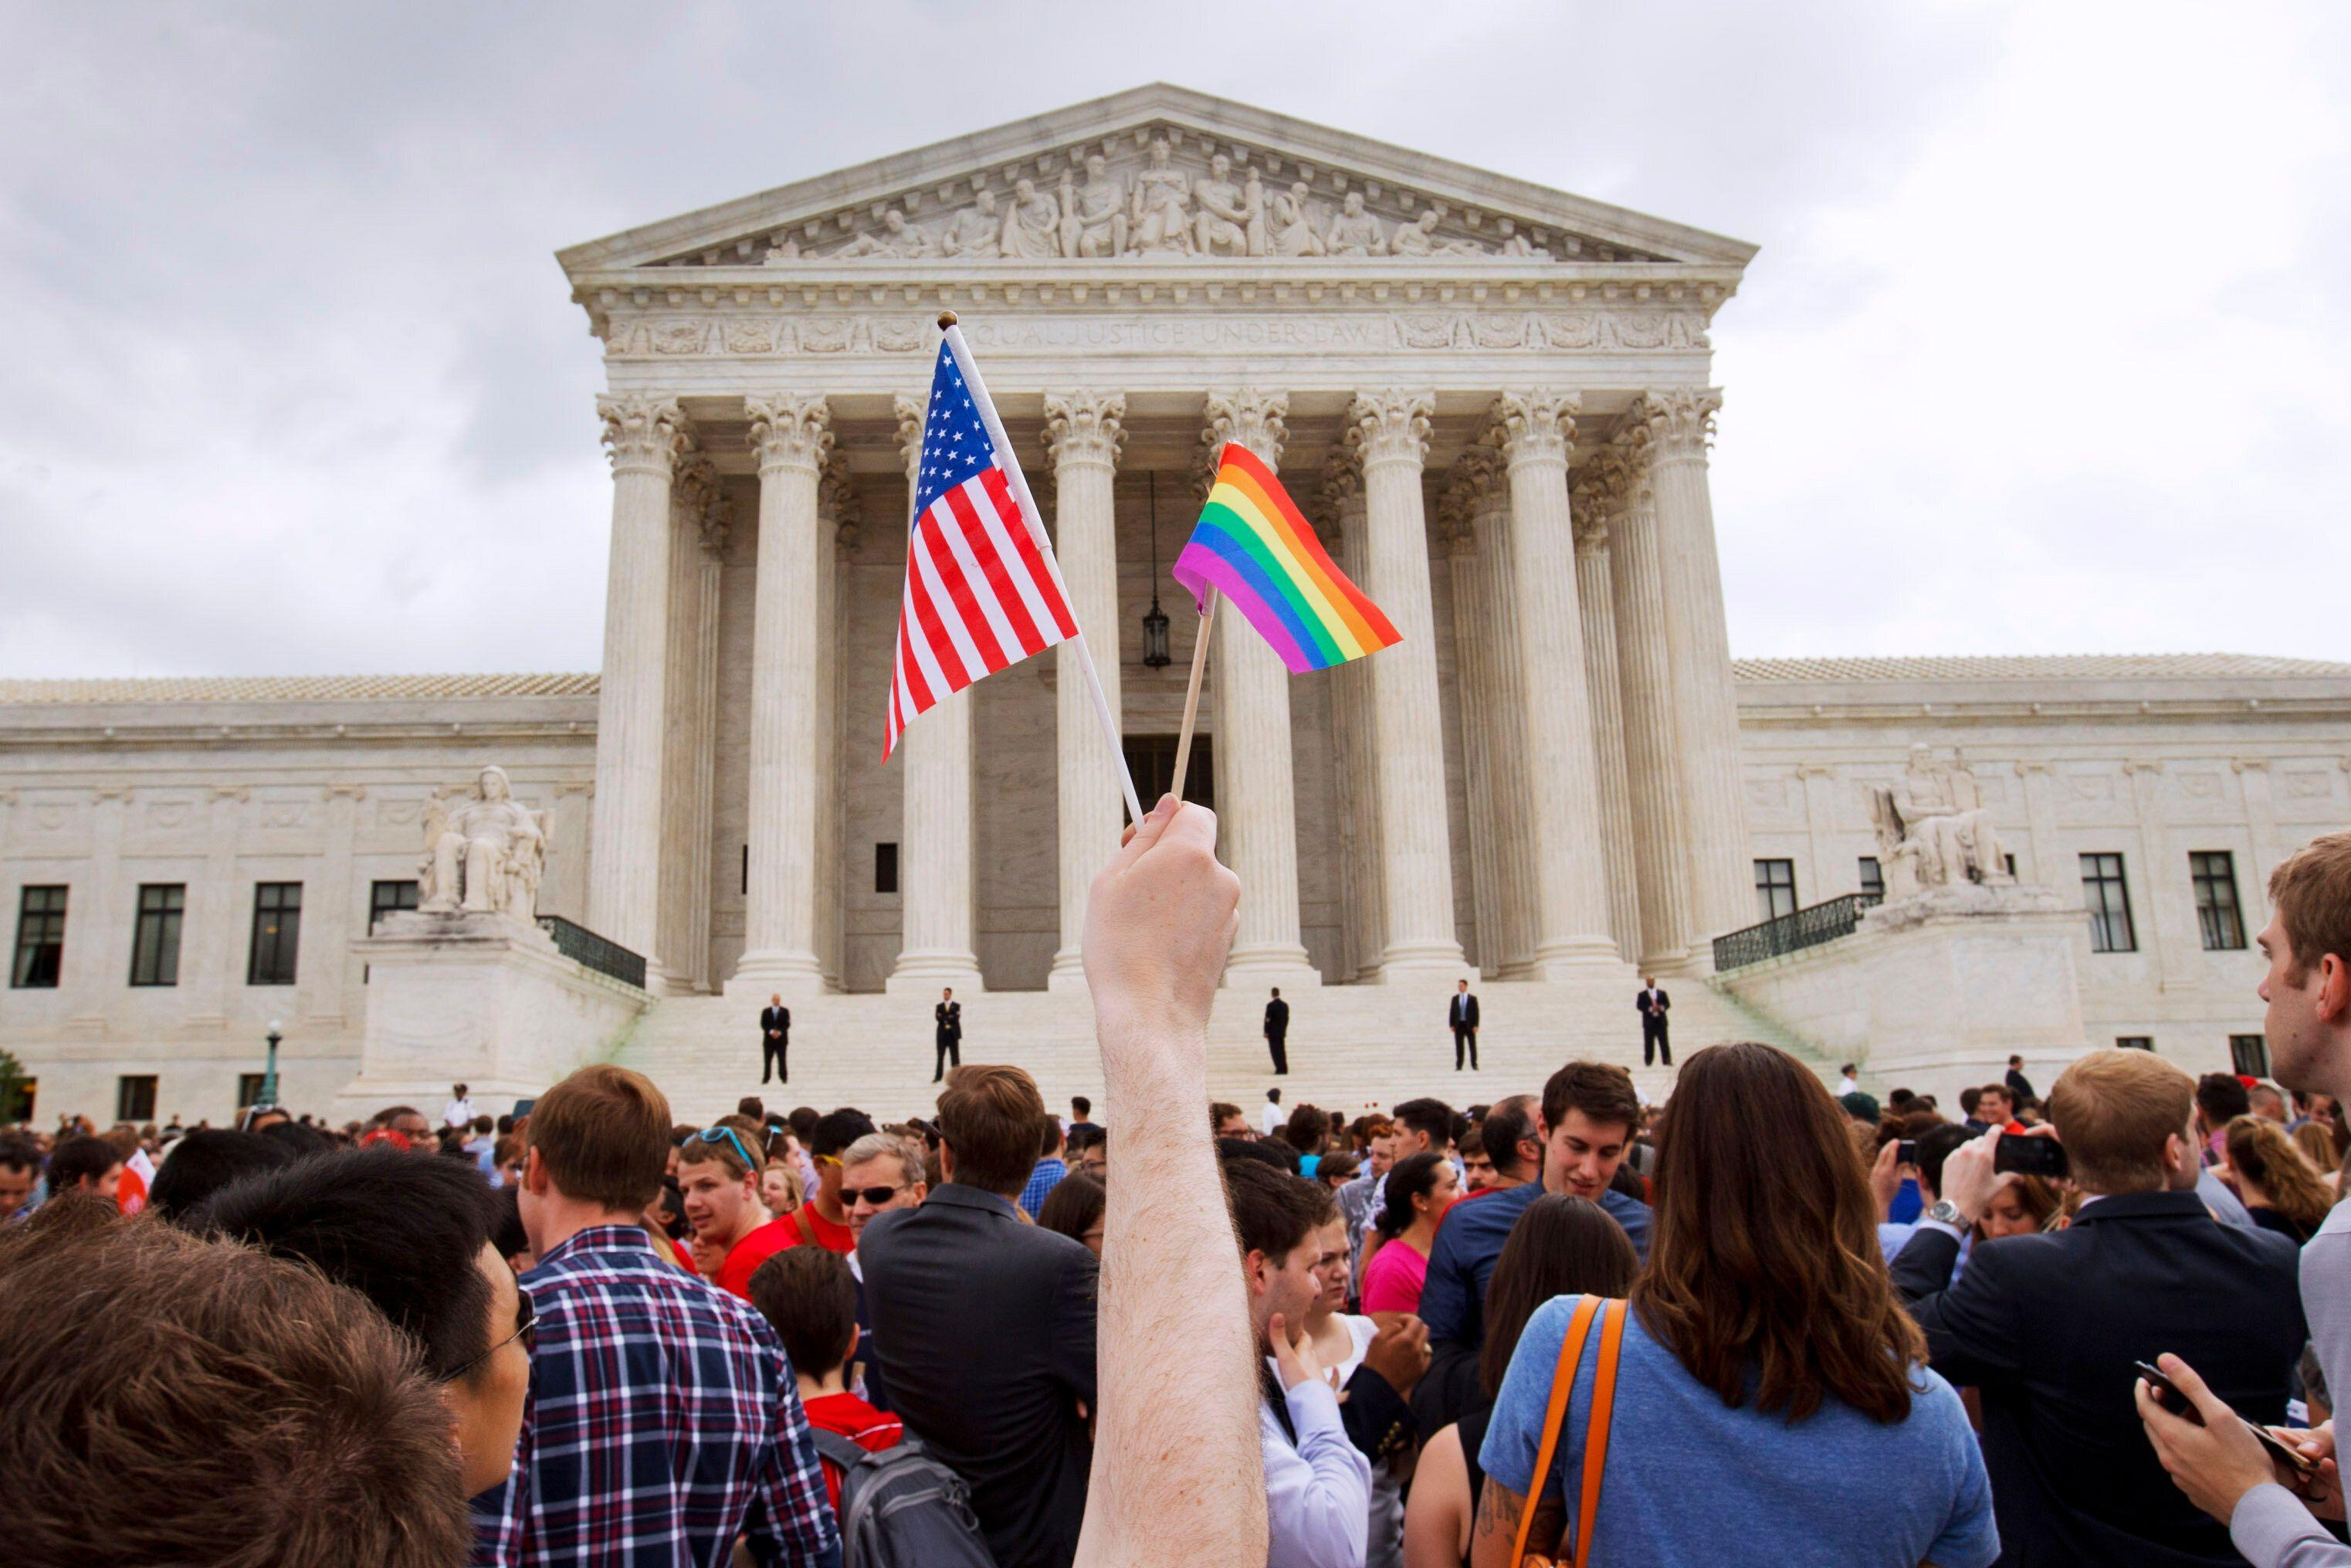 What took you so long?: Trump Administration Asks SCOTUS To Legalize Firing LGBTQ Workers Based On Sexuality 5d6060d43c00004e0043b094